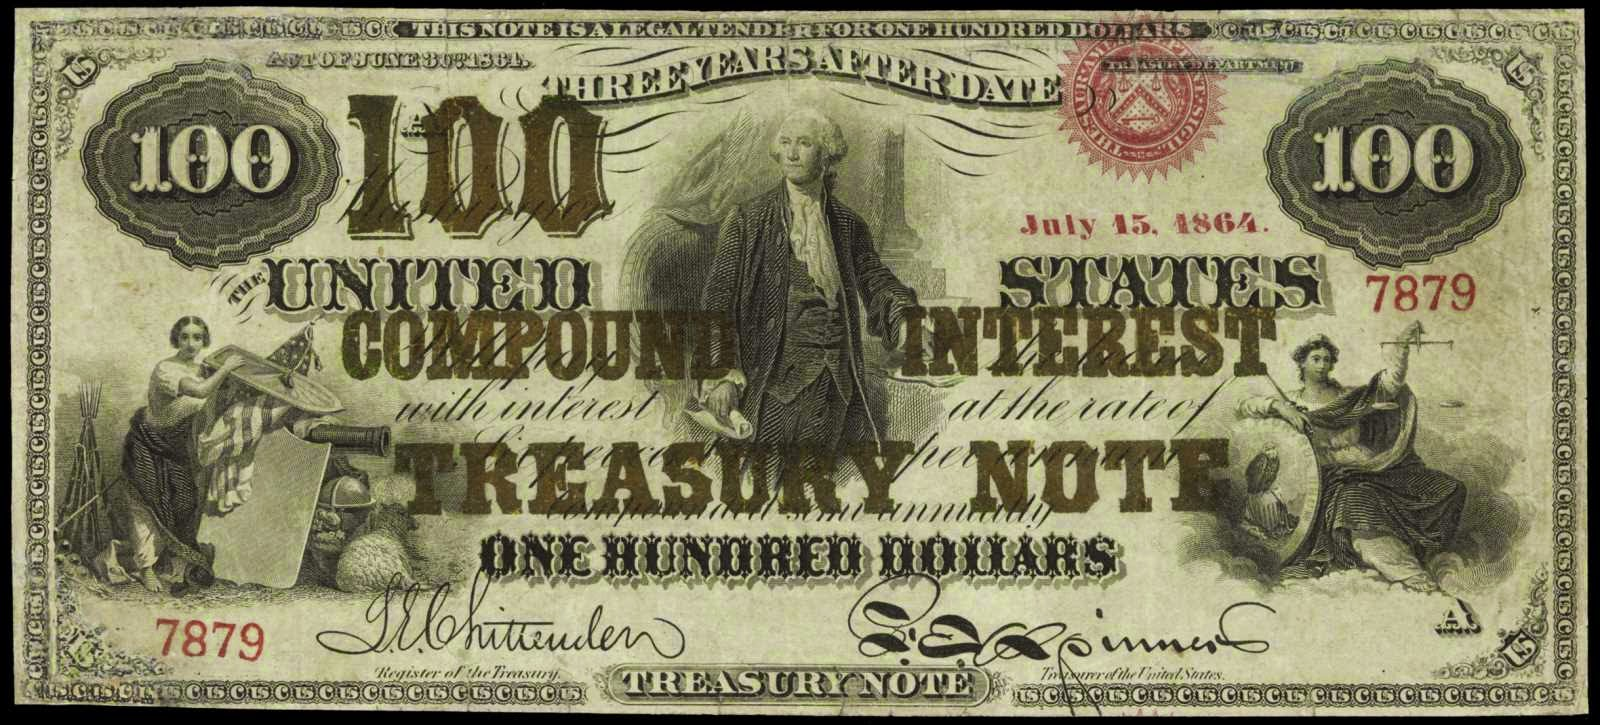 US paper money 1864 One Hundred Dollar Compound Interest Bearing Note